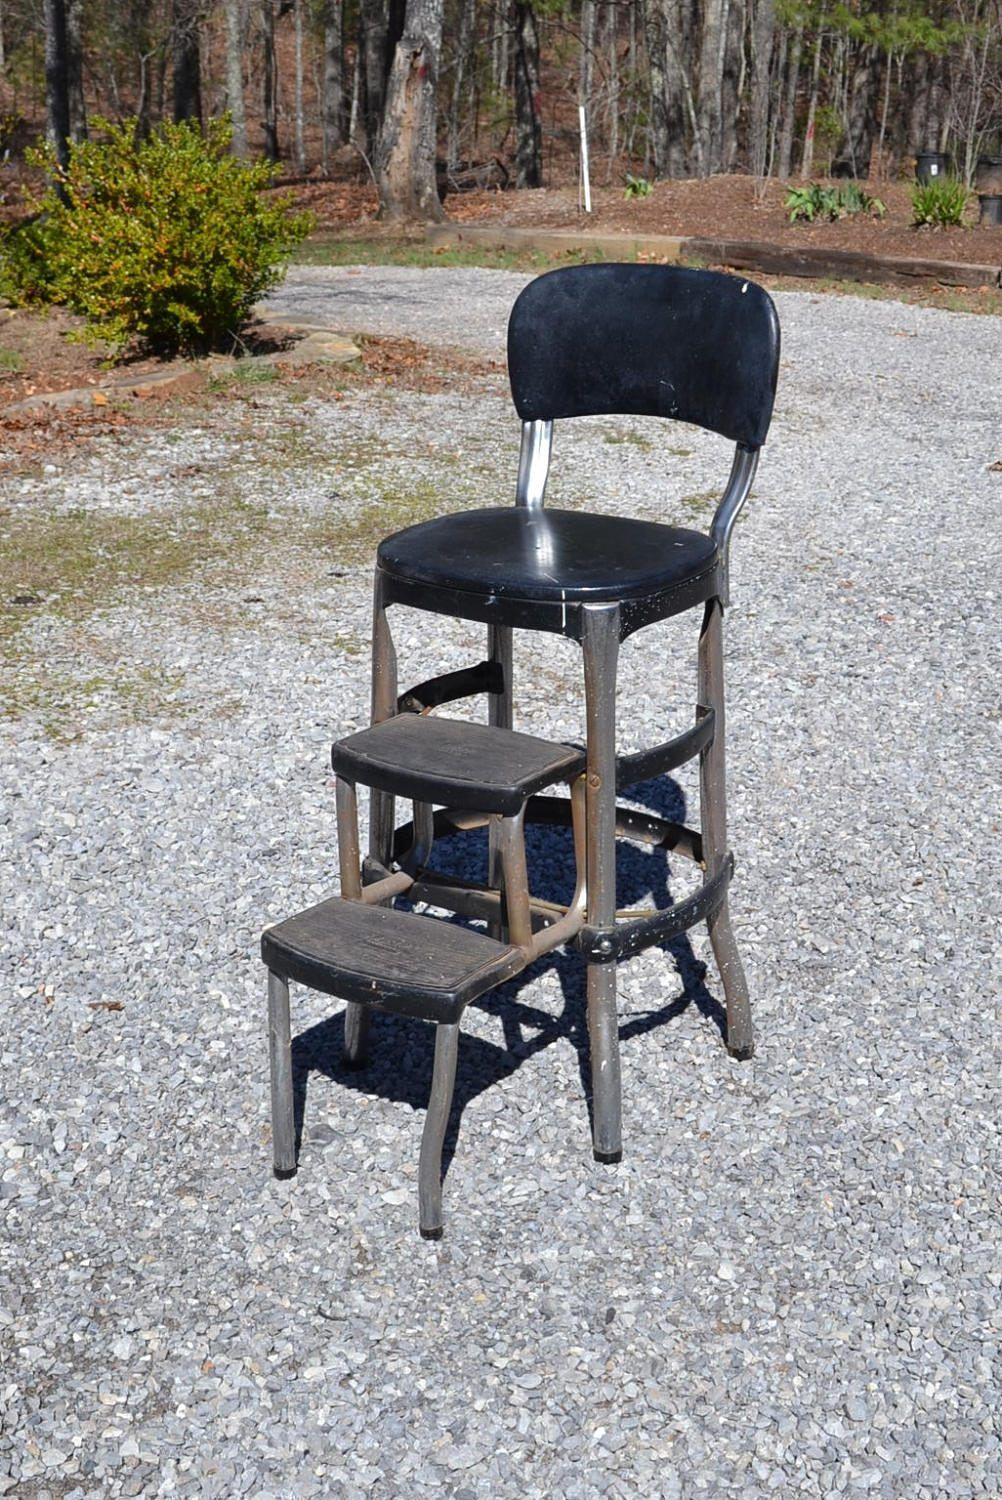 Metal Step Stool Vintage Cosco Kitchen Stool Metal Folding Step Stool Chair Black